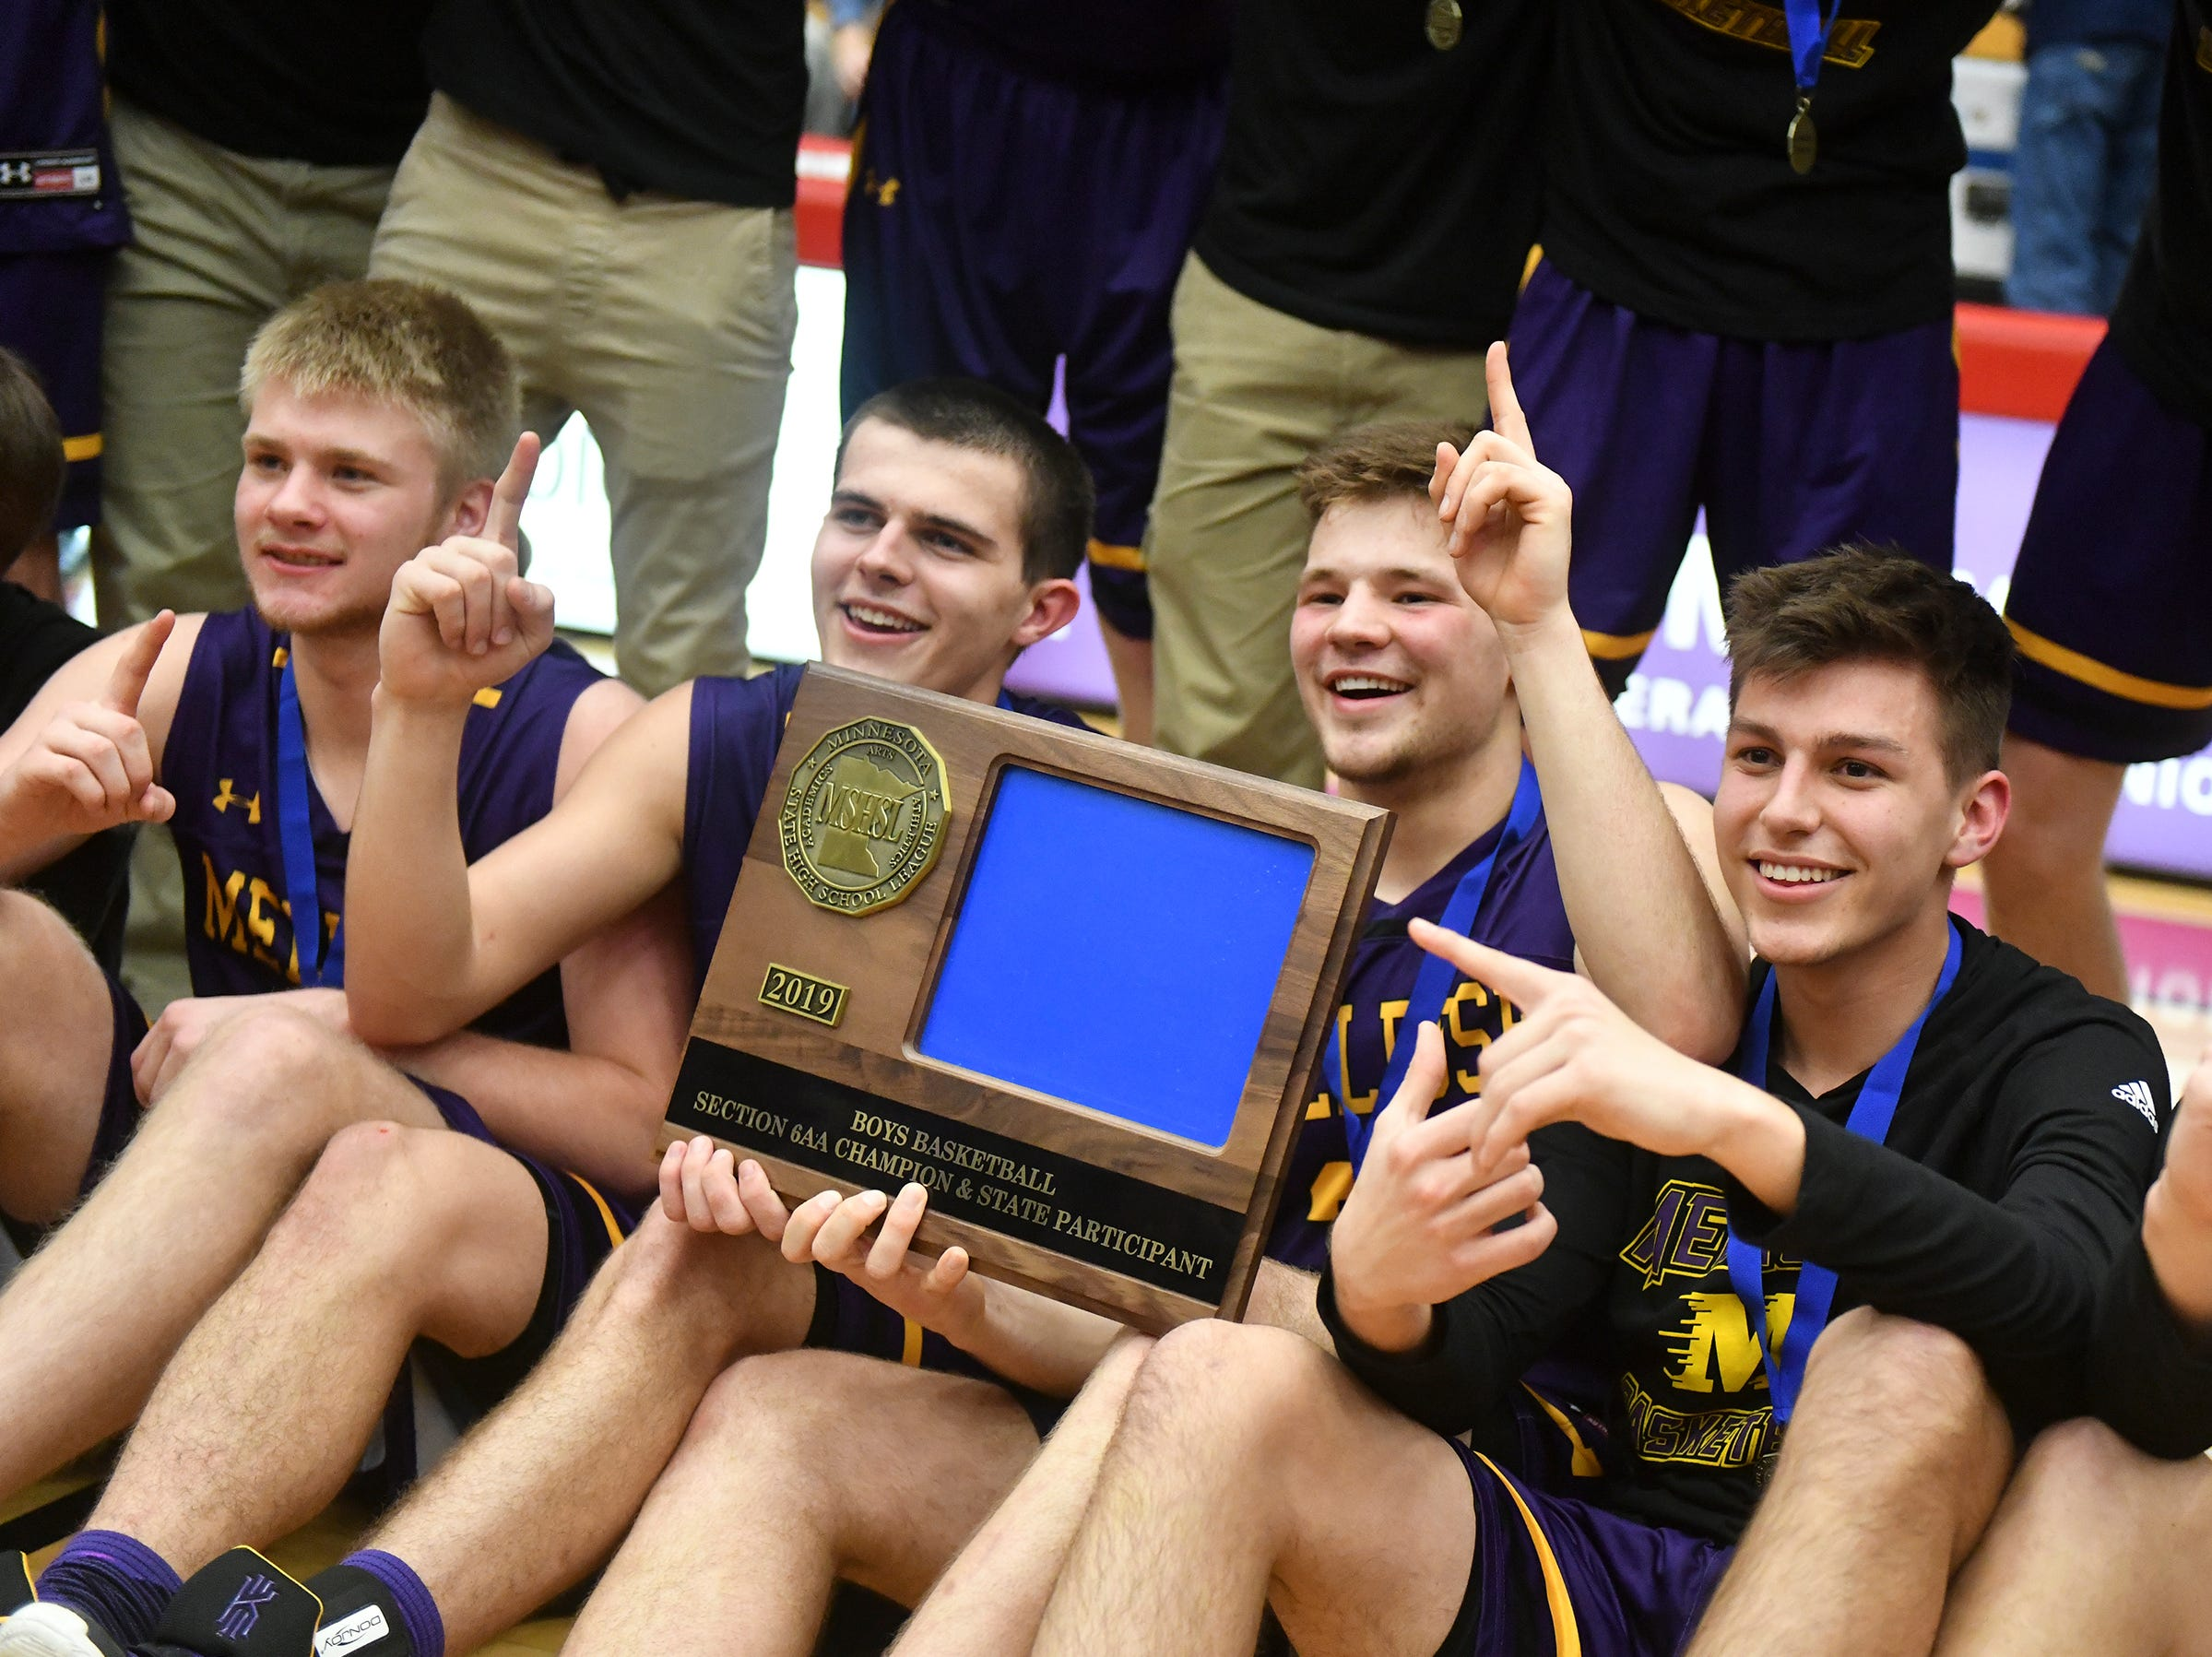 Melrose players pose with their first-place trophy following the Friday, March 15, Section 6-2A championship game at Halenbeck Hall in St. Cloud.